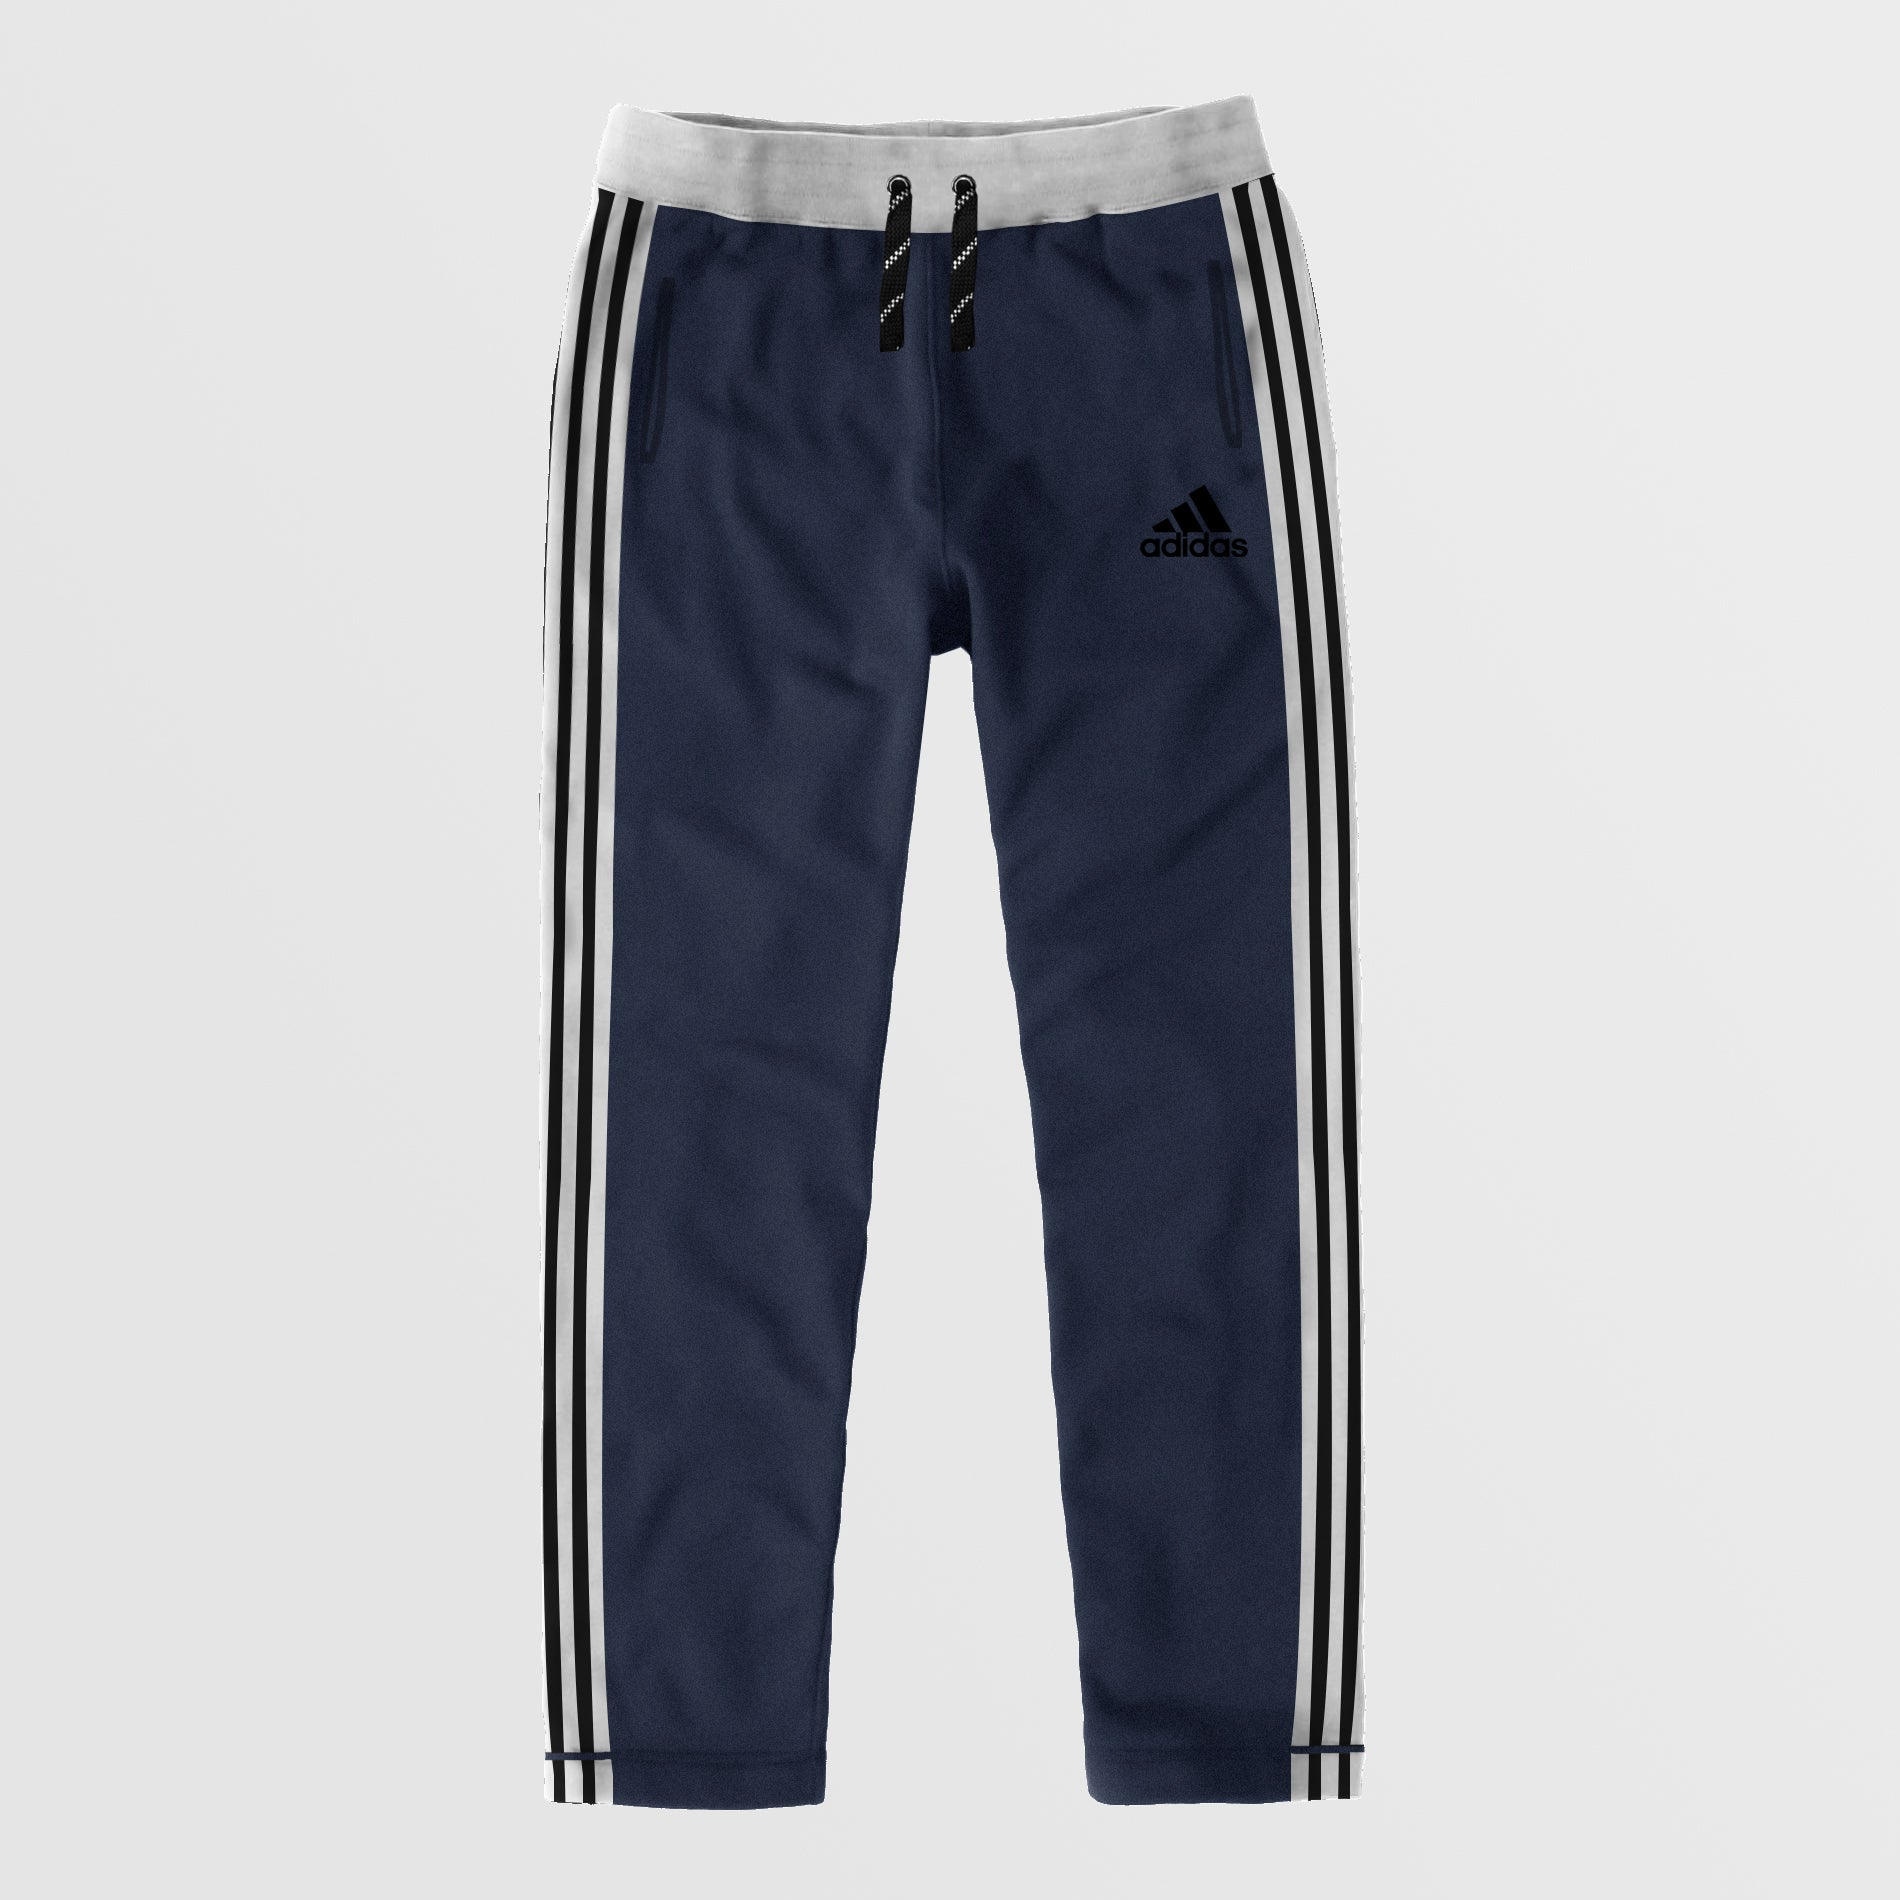 Adidas Single Jersey Regular Fit Trouser For Men-Navy Melange With Black Stripes-NA8794